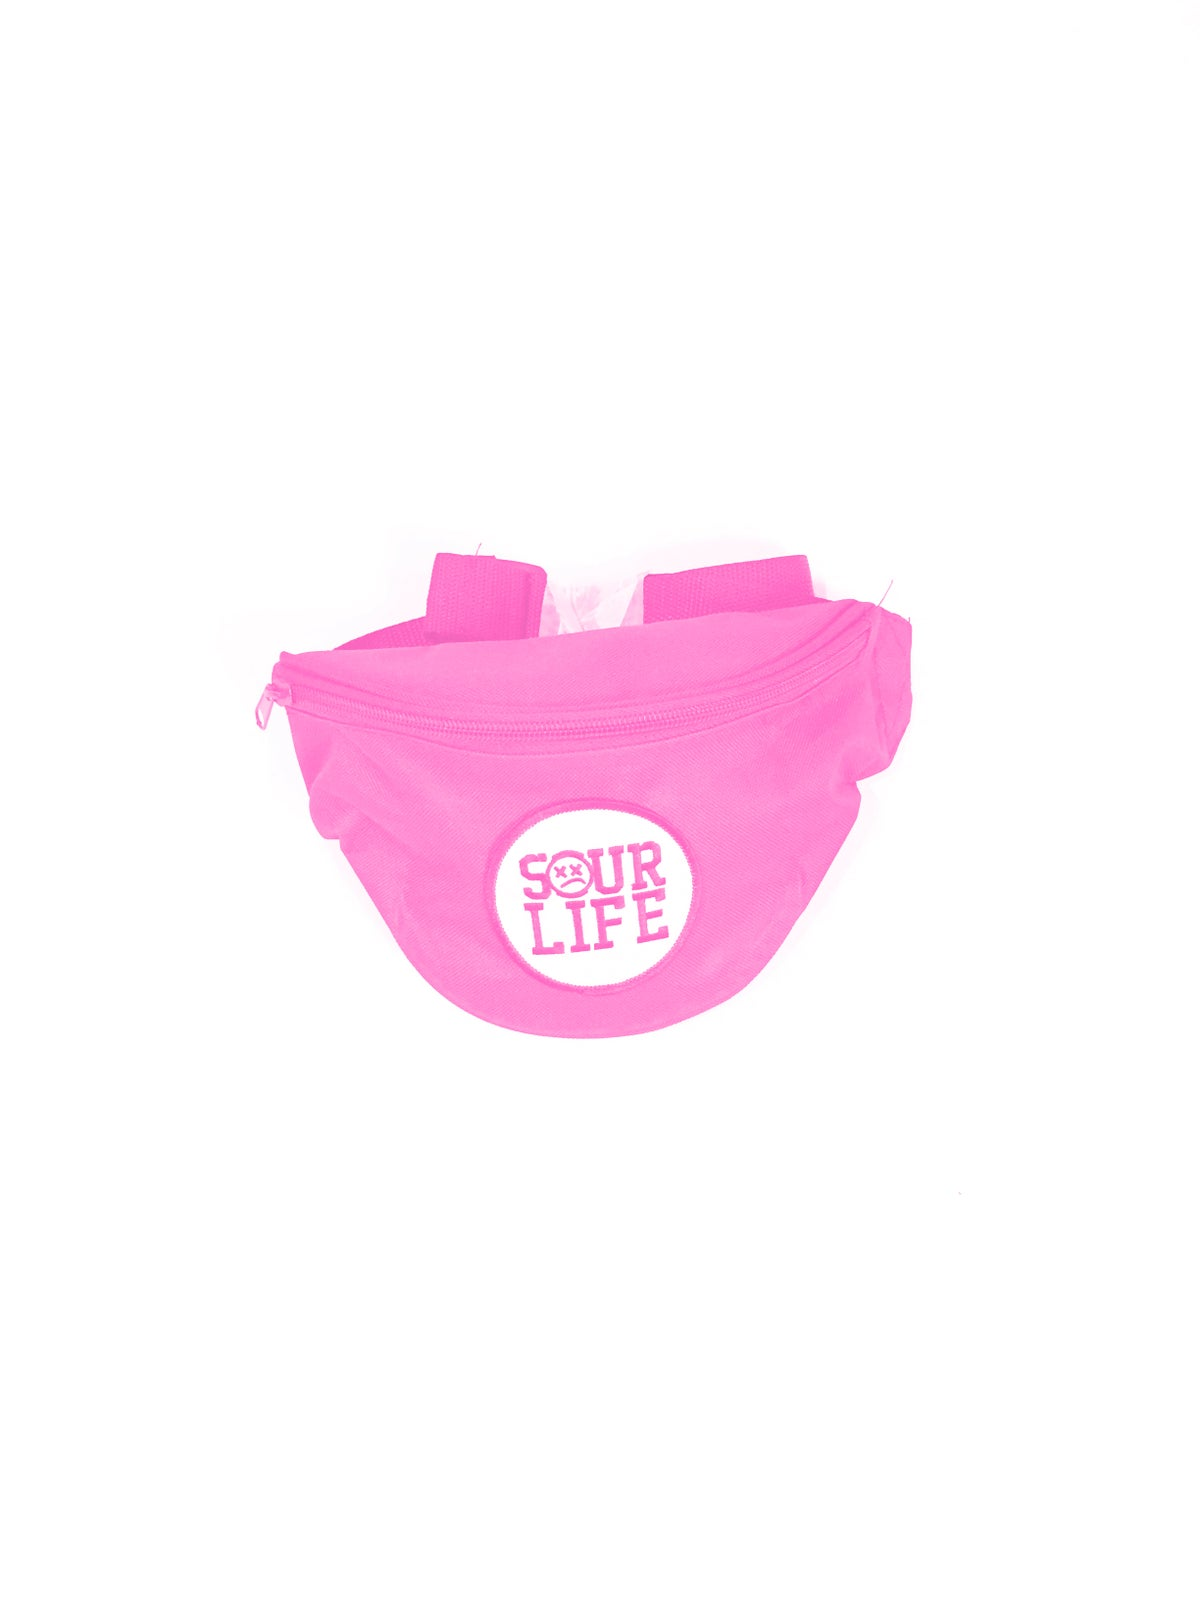 Image of SourLife Fanny Pack